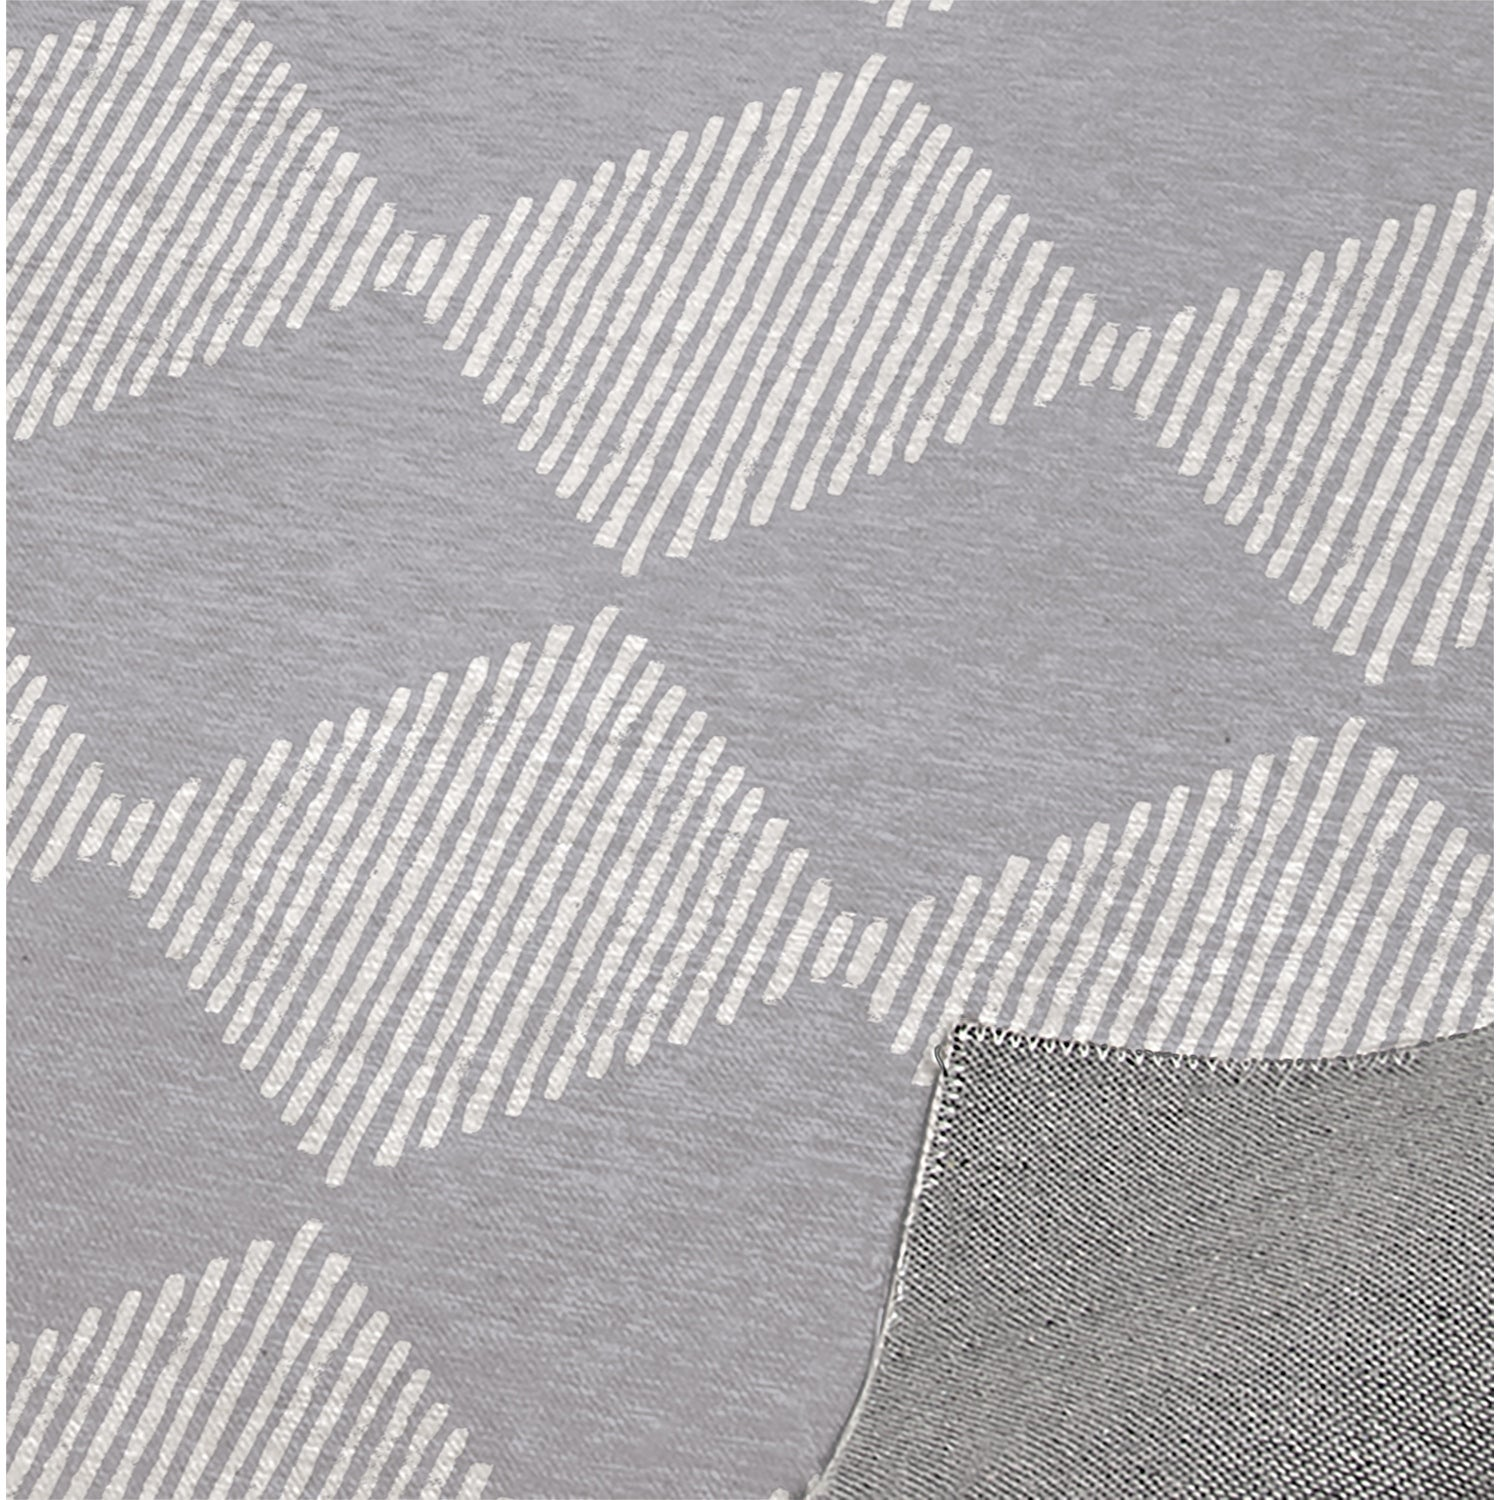 Block Print Check Board In White And Grey Kitchen Mat By Kavka Designs Overstock 30585530